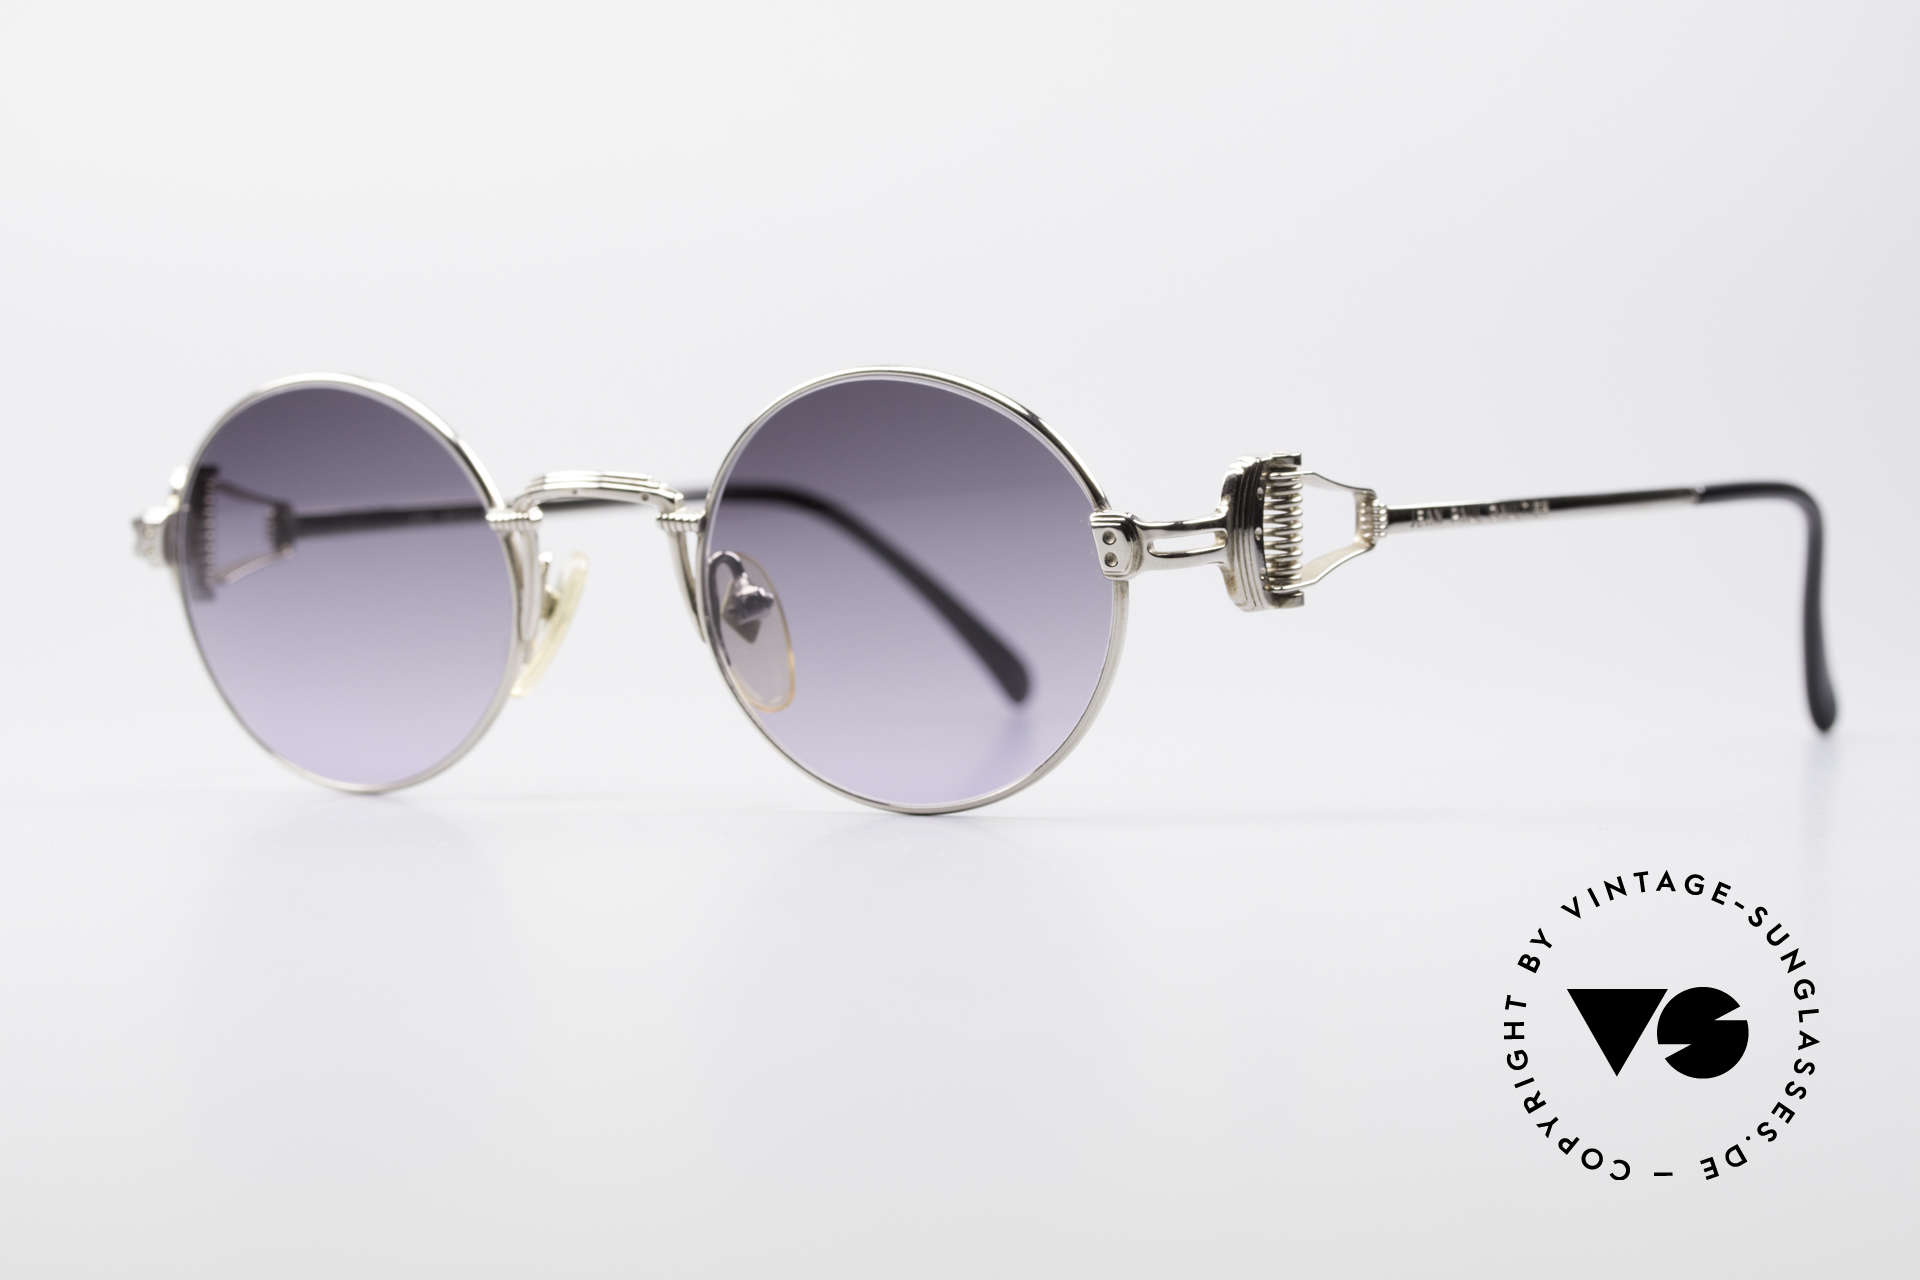 """Jean Paul Gaultier 55-5106 Steampunk Sunglasses, these days, often called as vintage """"steampunk glasses"""", Made for Men and Women"""